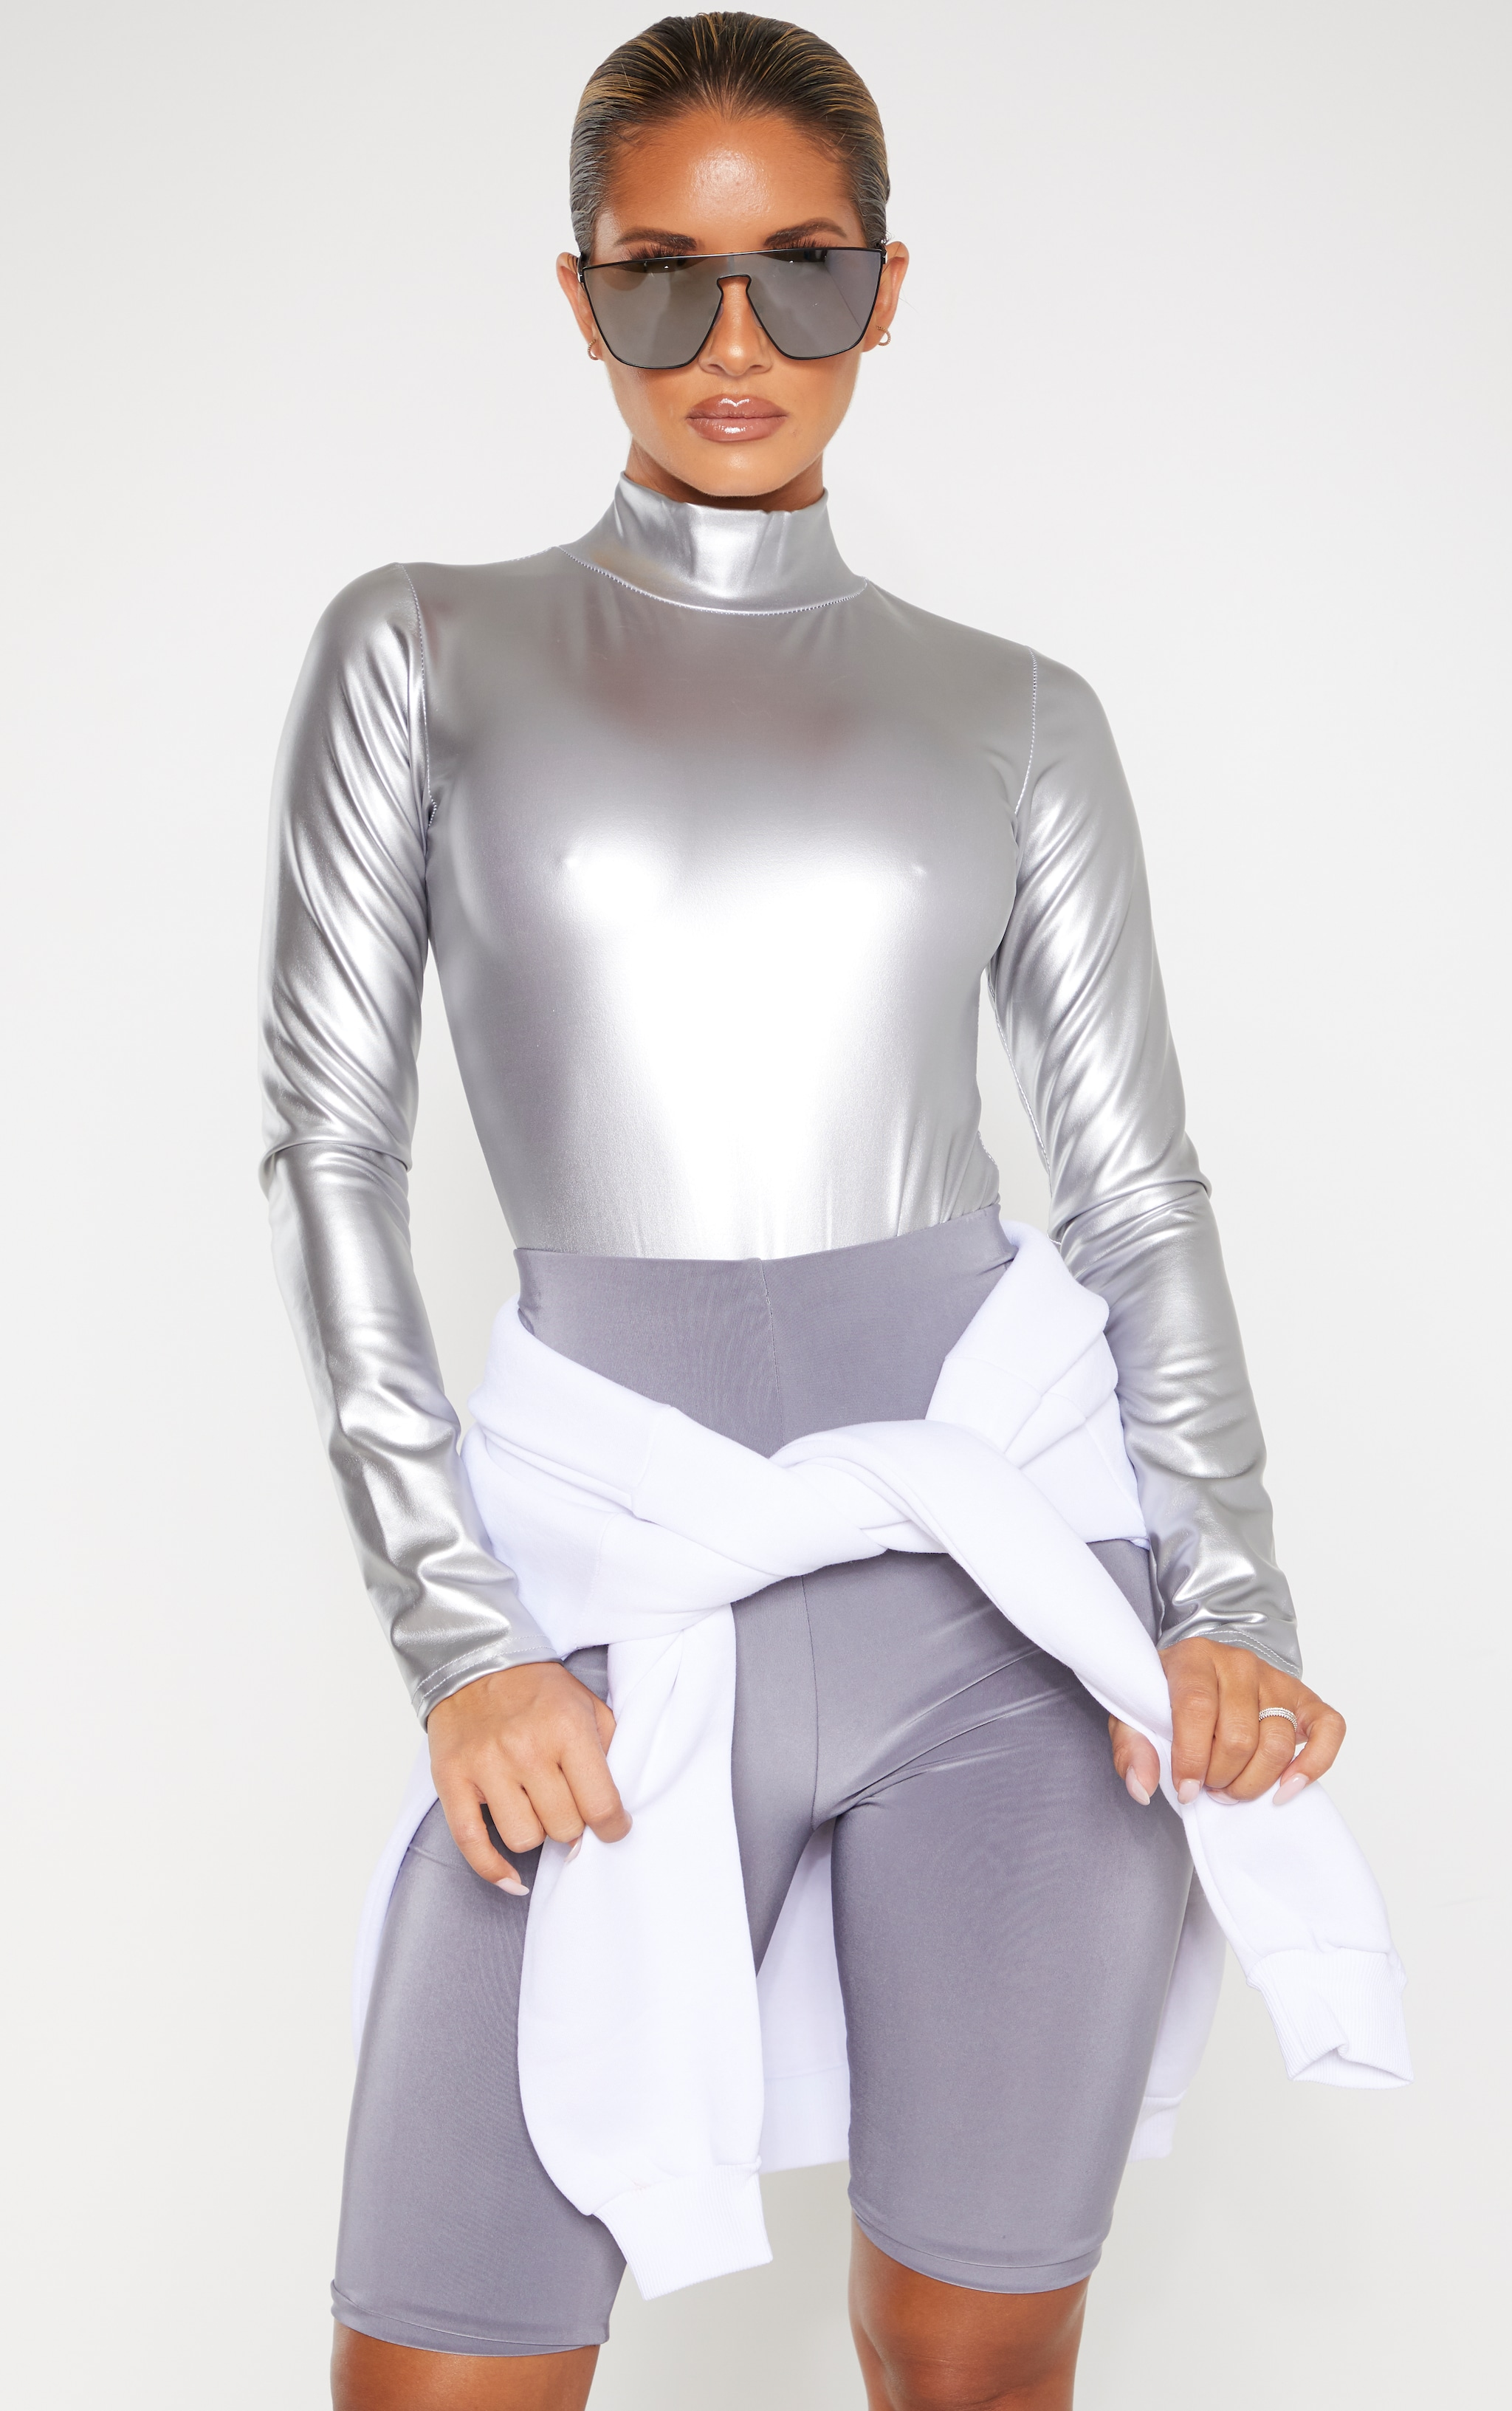 Silver Metallic High Neck Long Sleeve Bodysuit 1